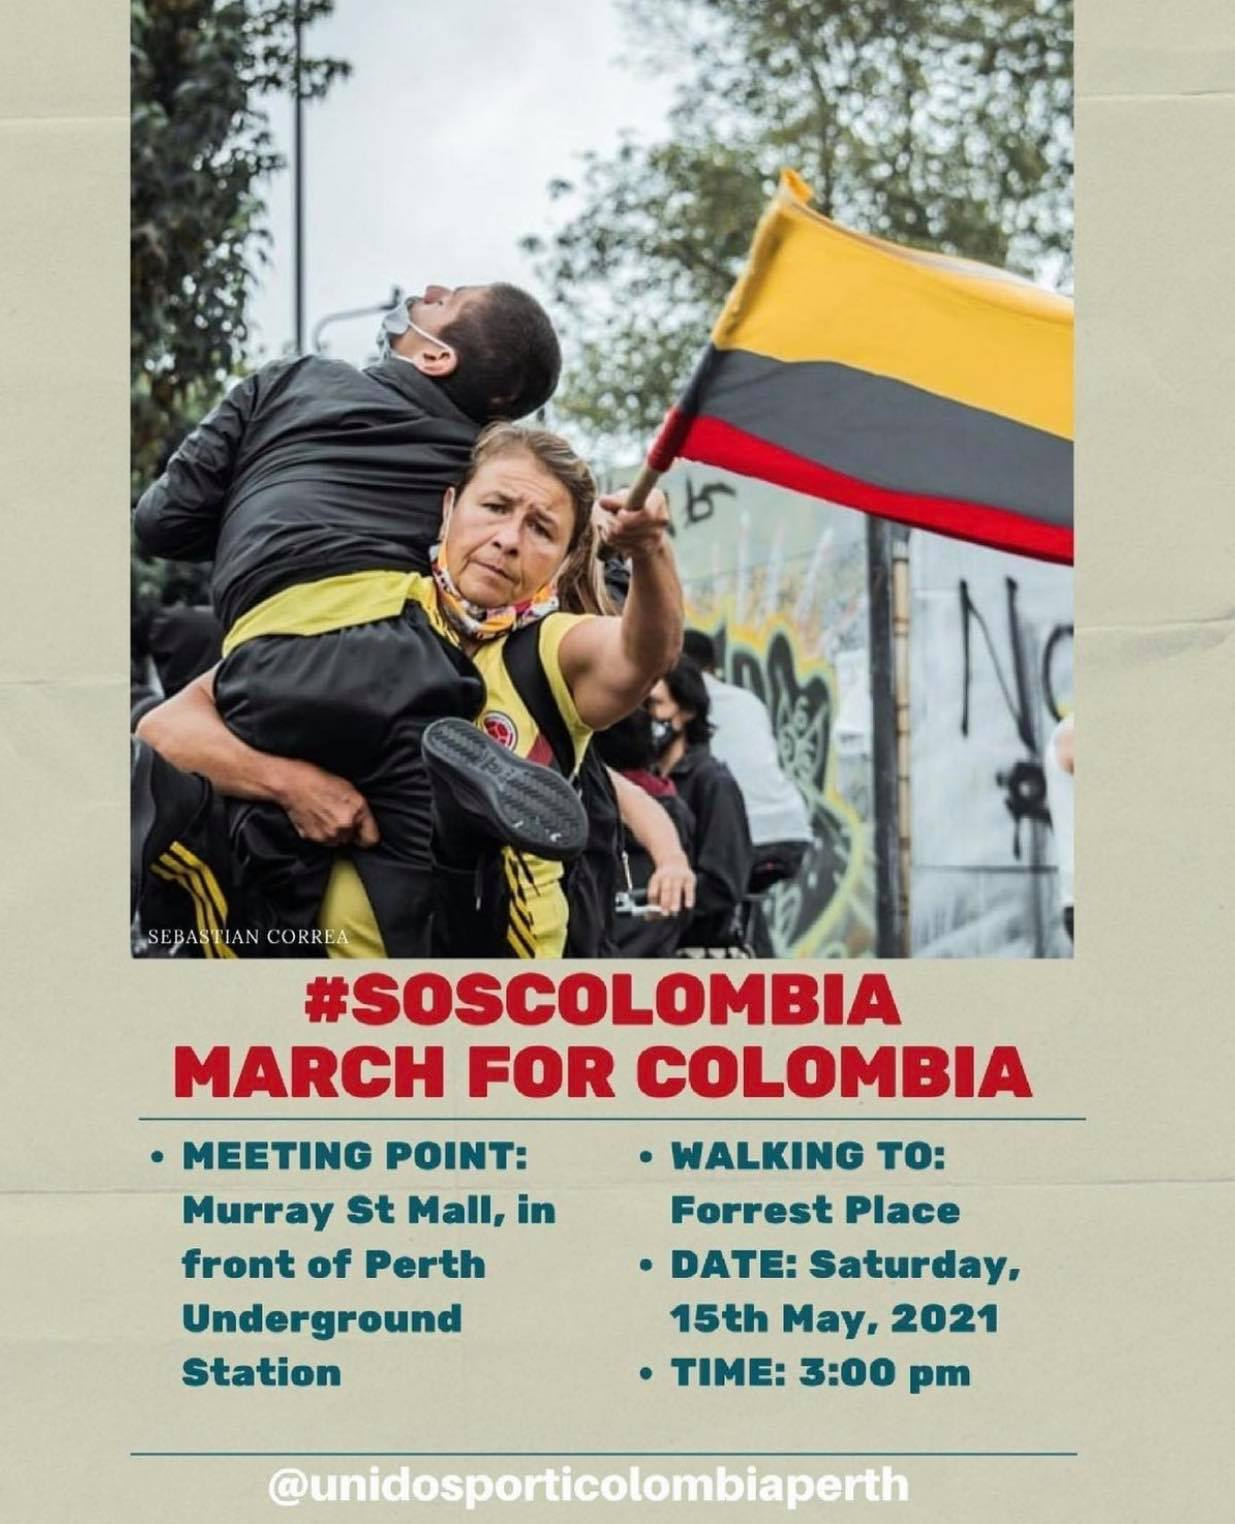 Colombia protests violence